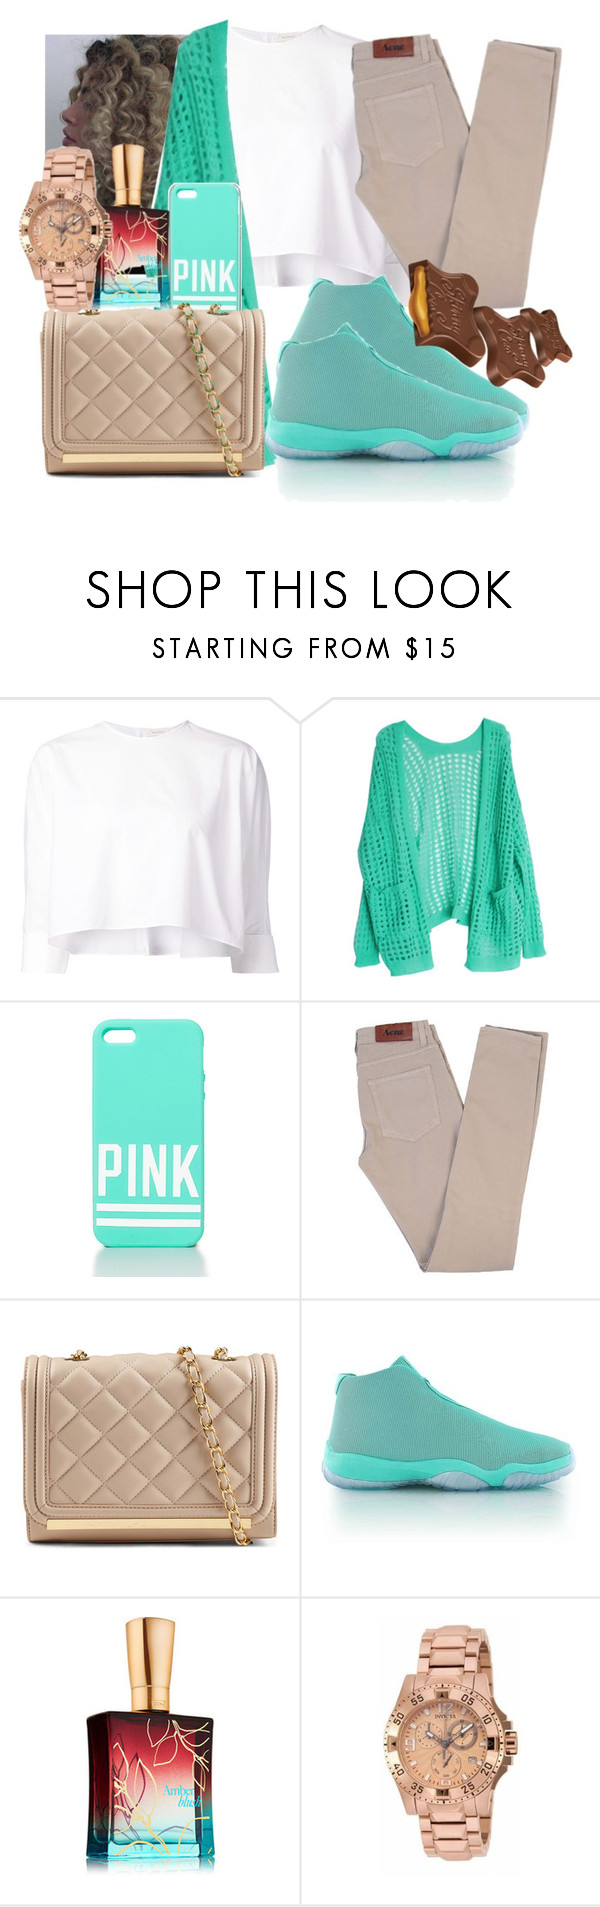 """""""Mood"""" by yasmeen4740 ❤ liked on Polyvore featuring Delpozo, Victoria's Secret PINK, Acne Studios, ALDO and Invicta"""